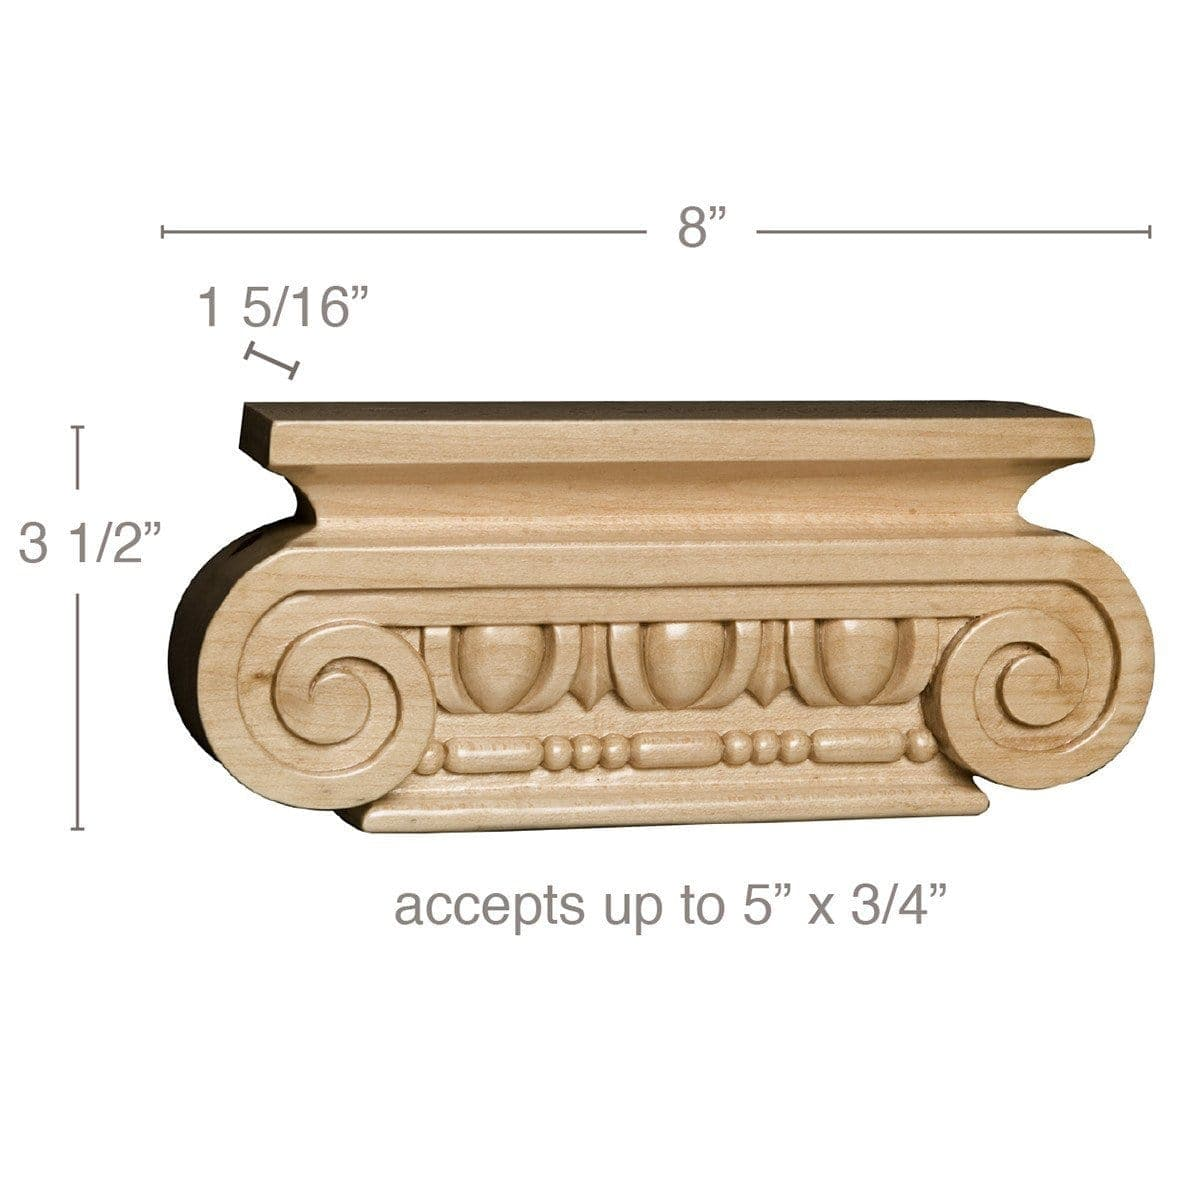 "Med Ionic Capital, 8""w x 3 1/2""h x 1 5/16""d, (accepts up to 5""w x 3/4""d)"